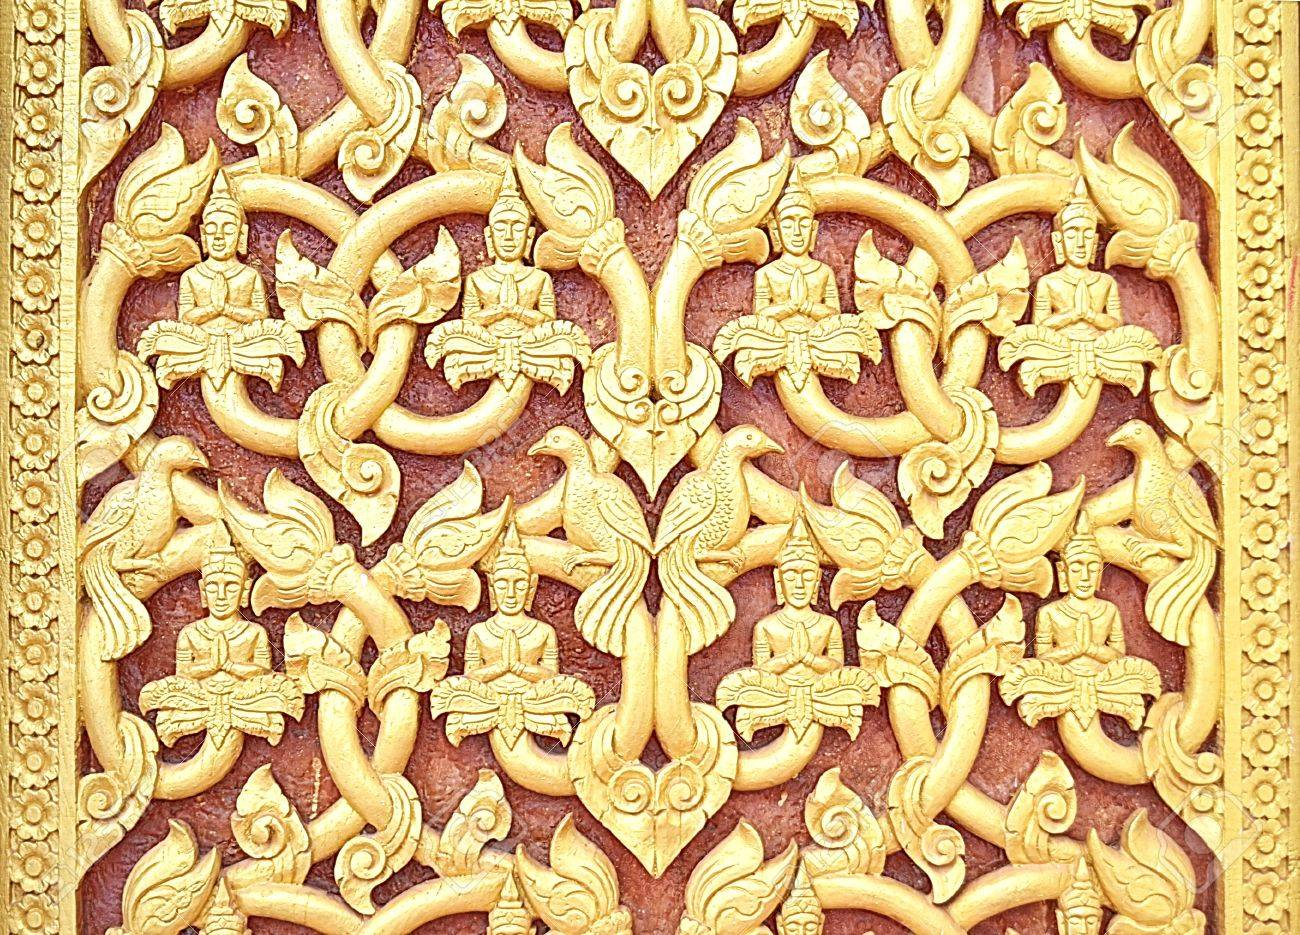 Pattern Of Laos,Wood Carving Art Stock Photo, Picture And Royalty ...